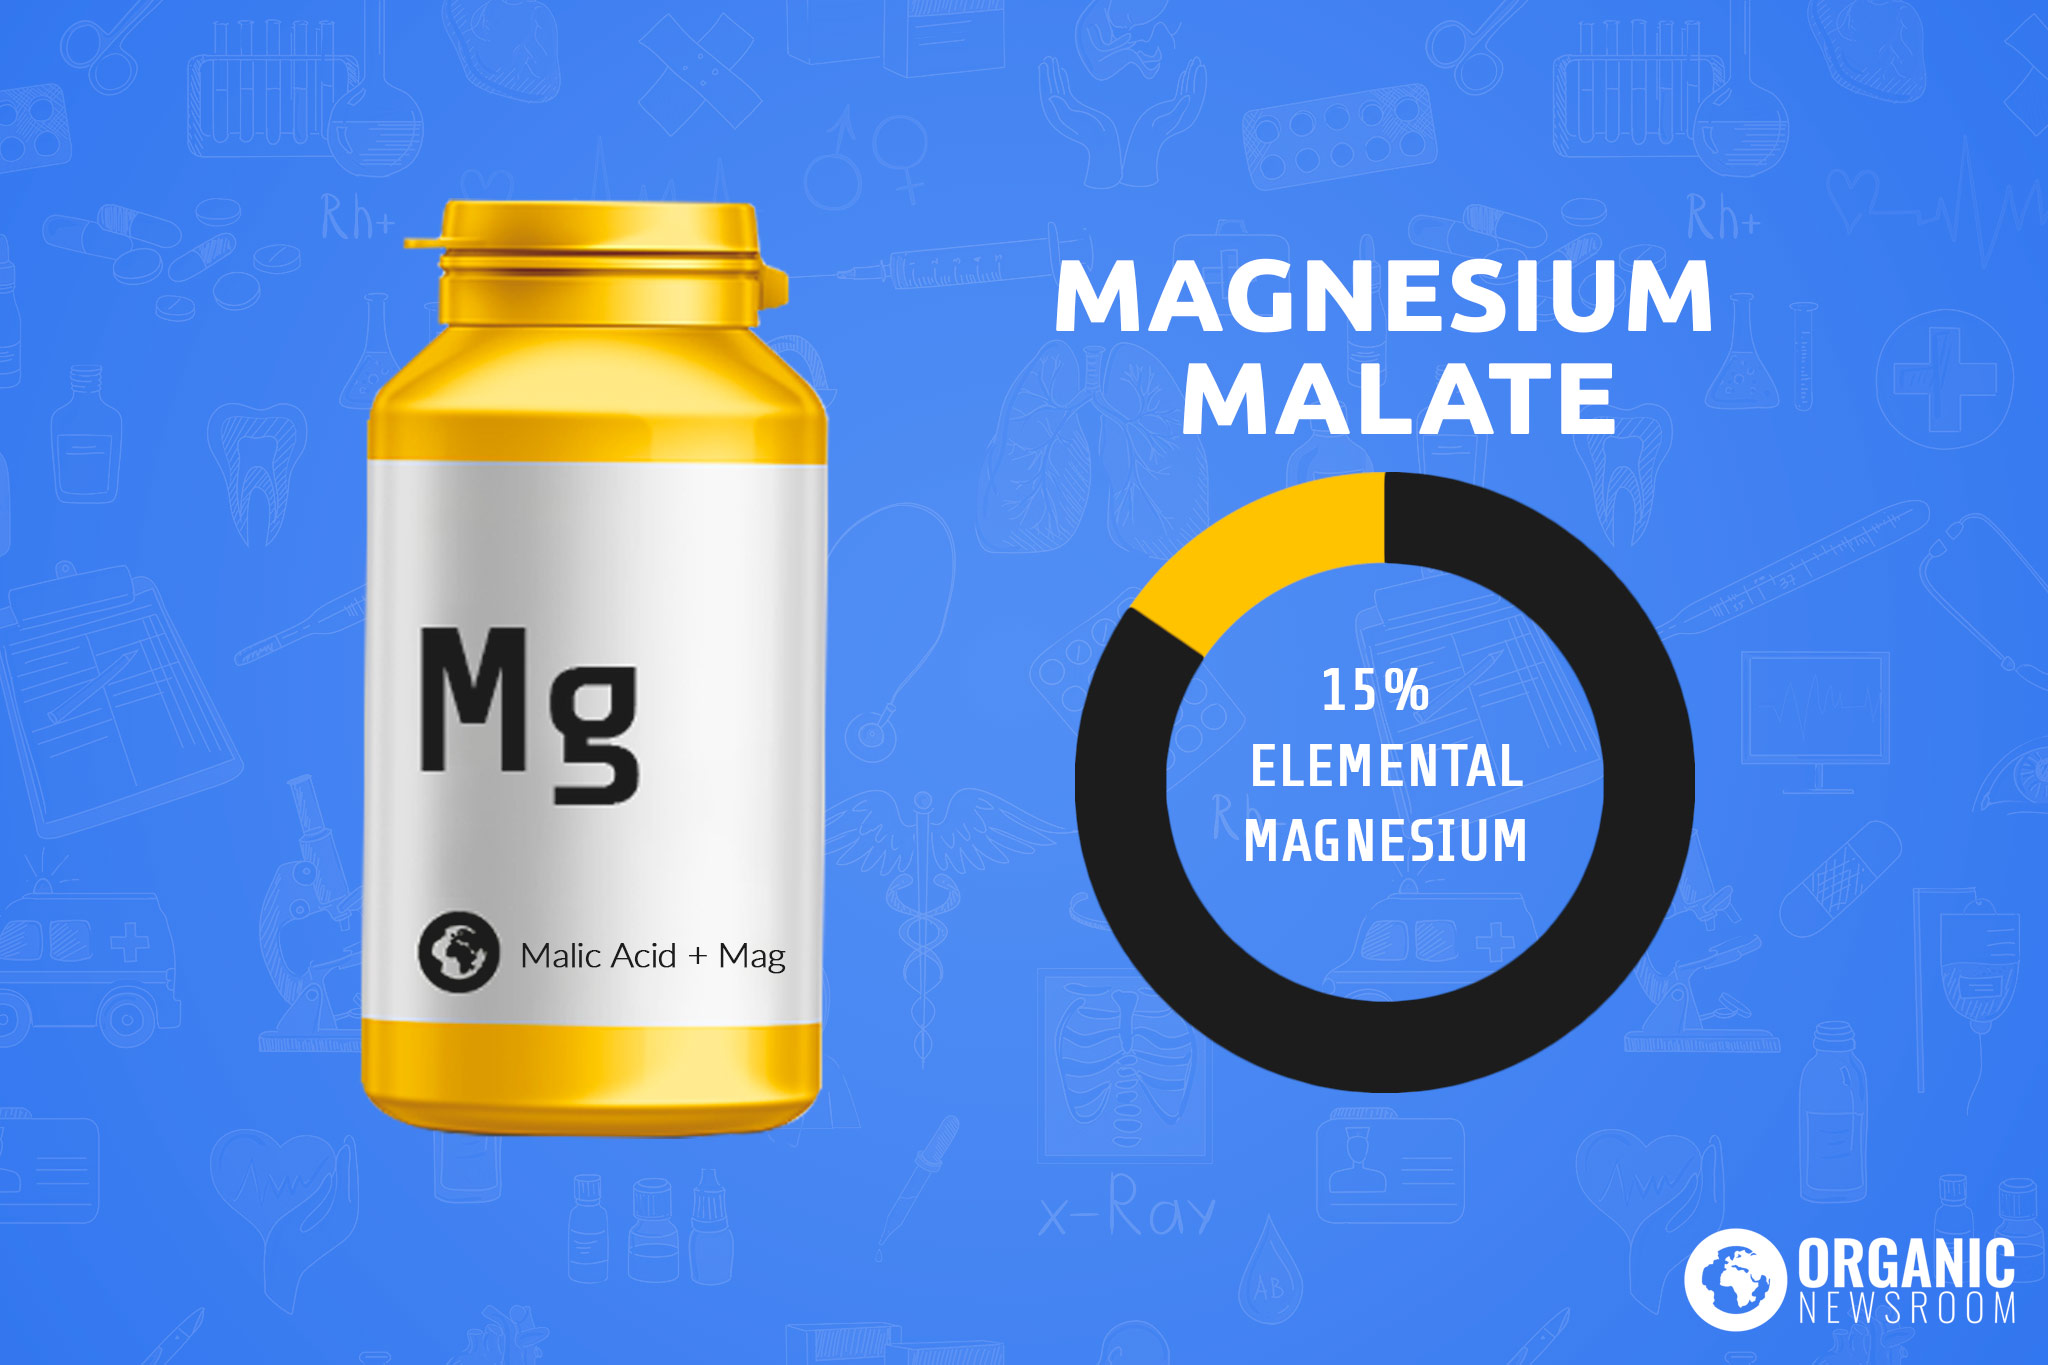 Magnesium Malate Supplements OrganicNewsroom